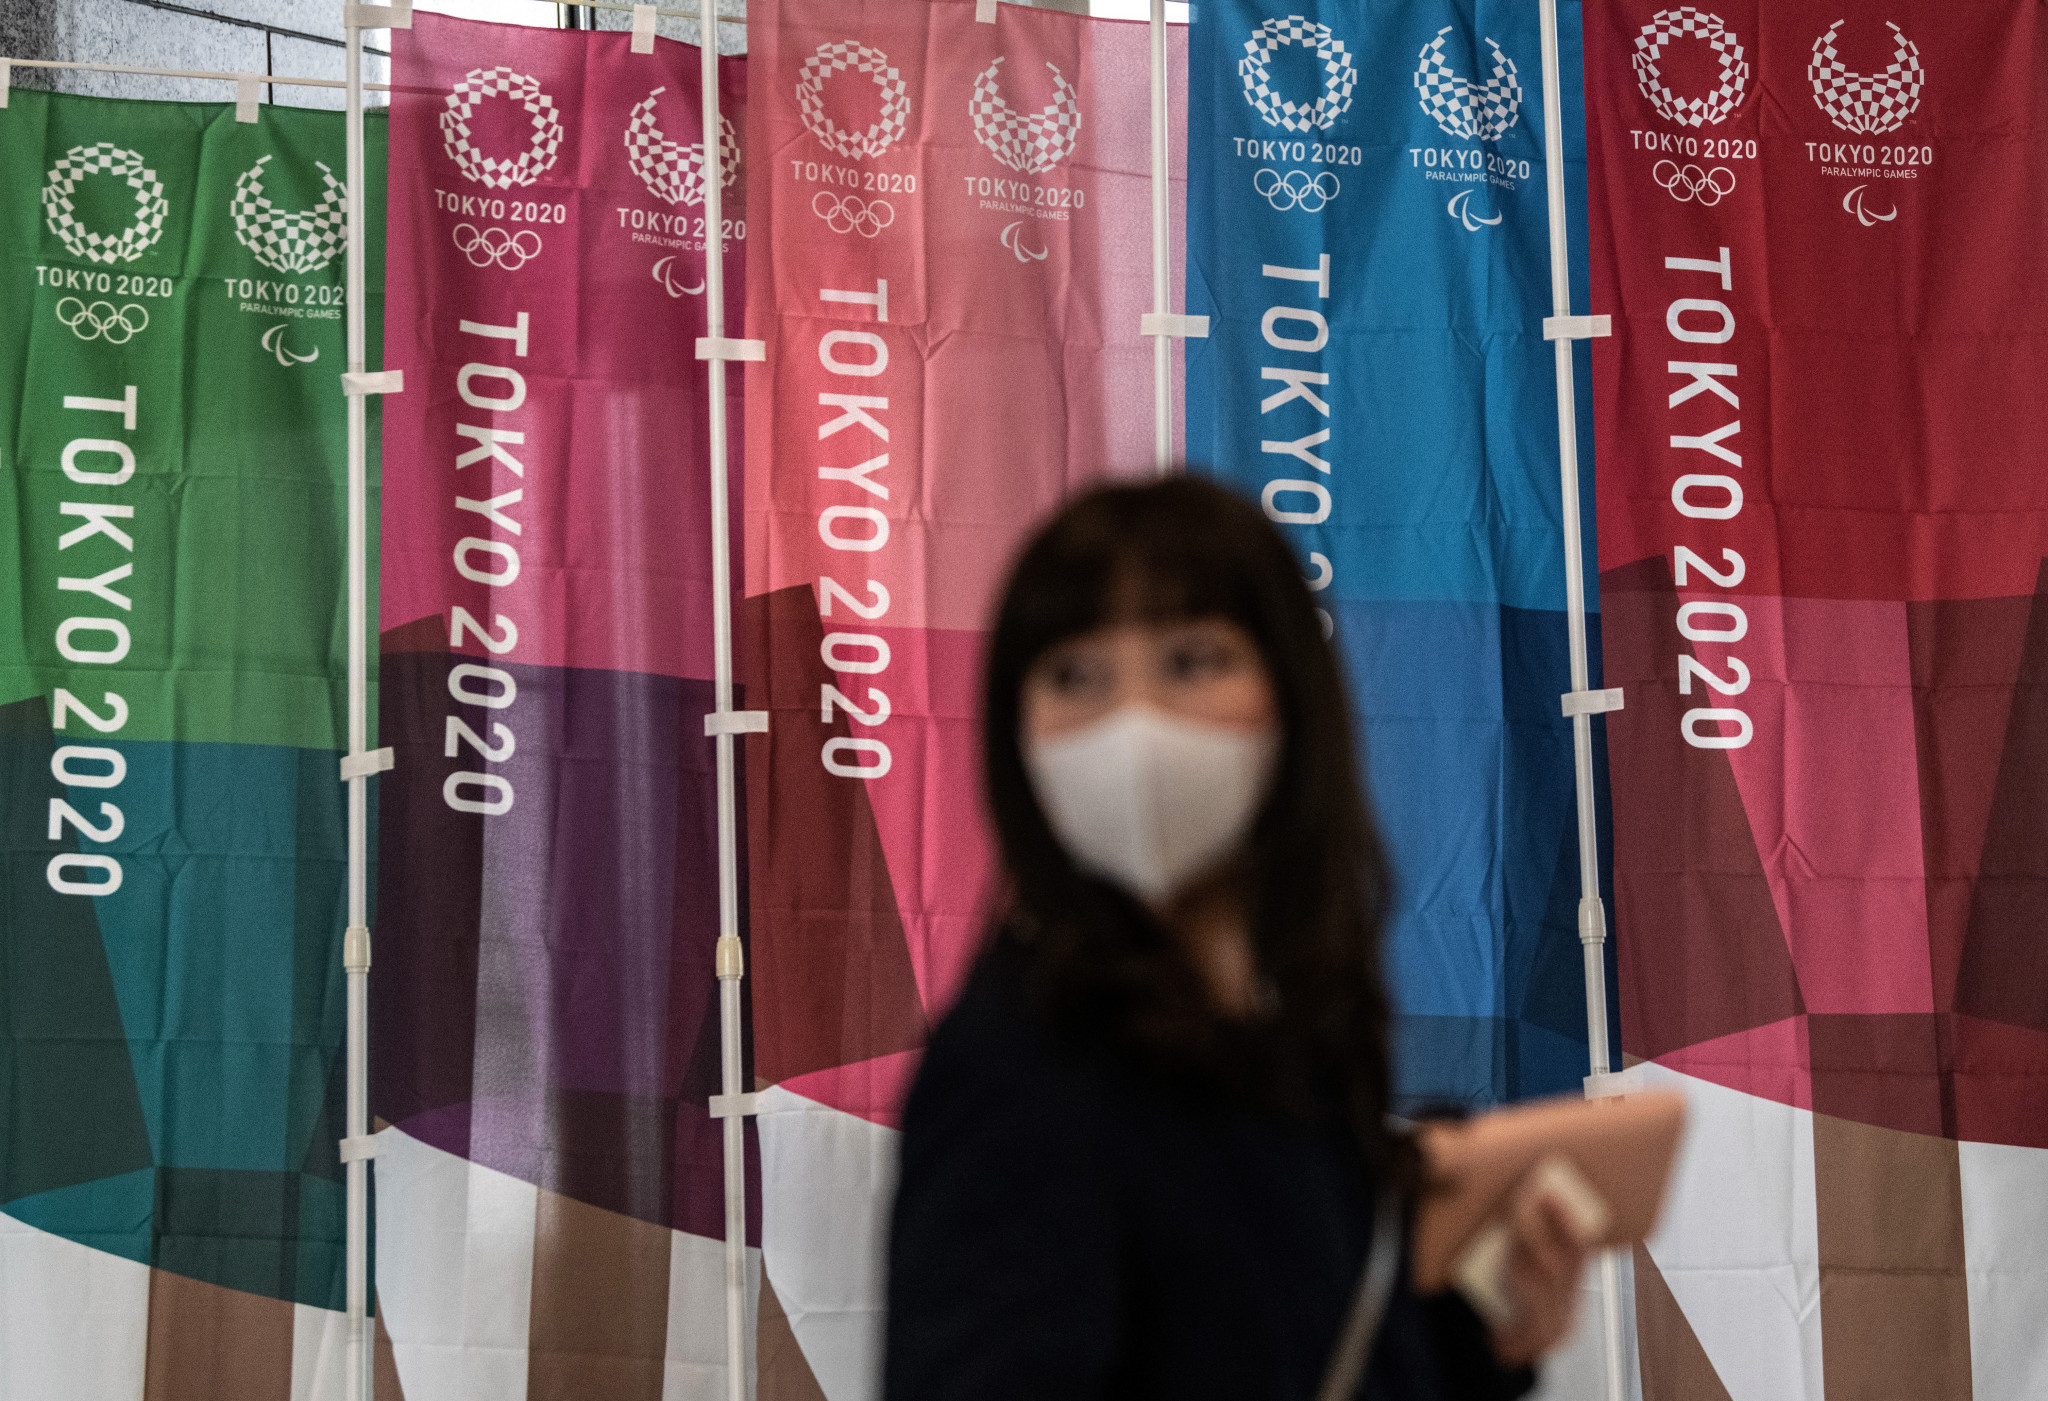 """Thomas Bach has insisted that """"everybody who wants to see can see that it is possible"""" to stage this year's Olympics safely in Tokyo ©Getty Images"""